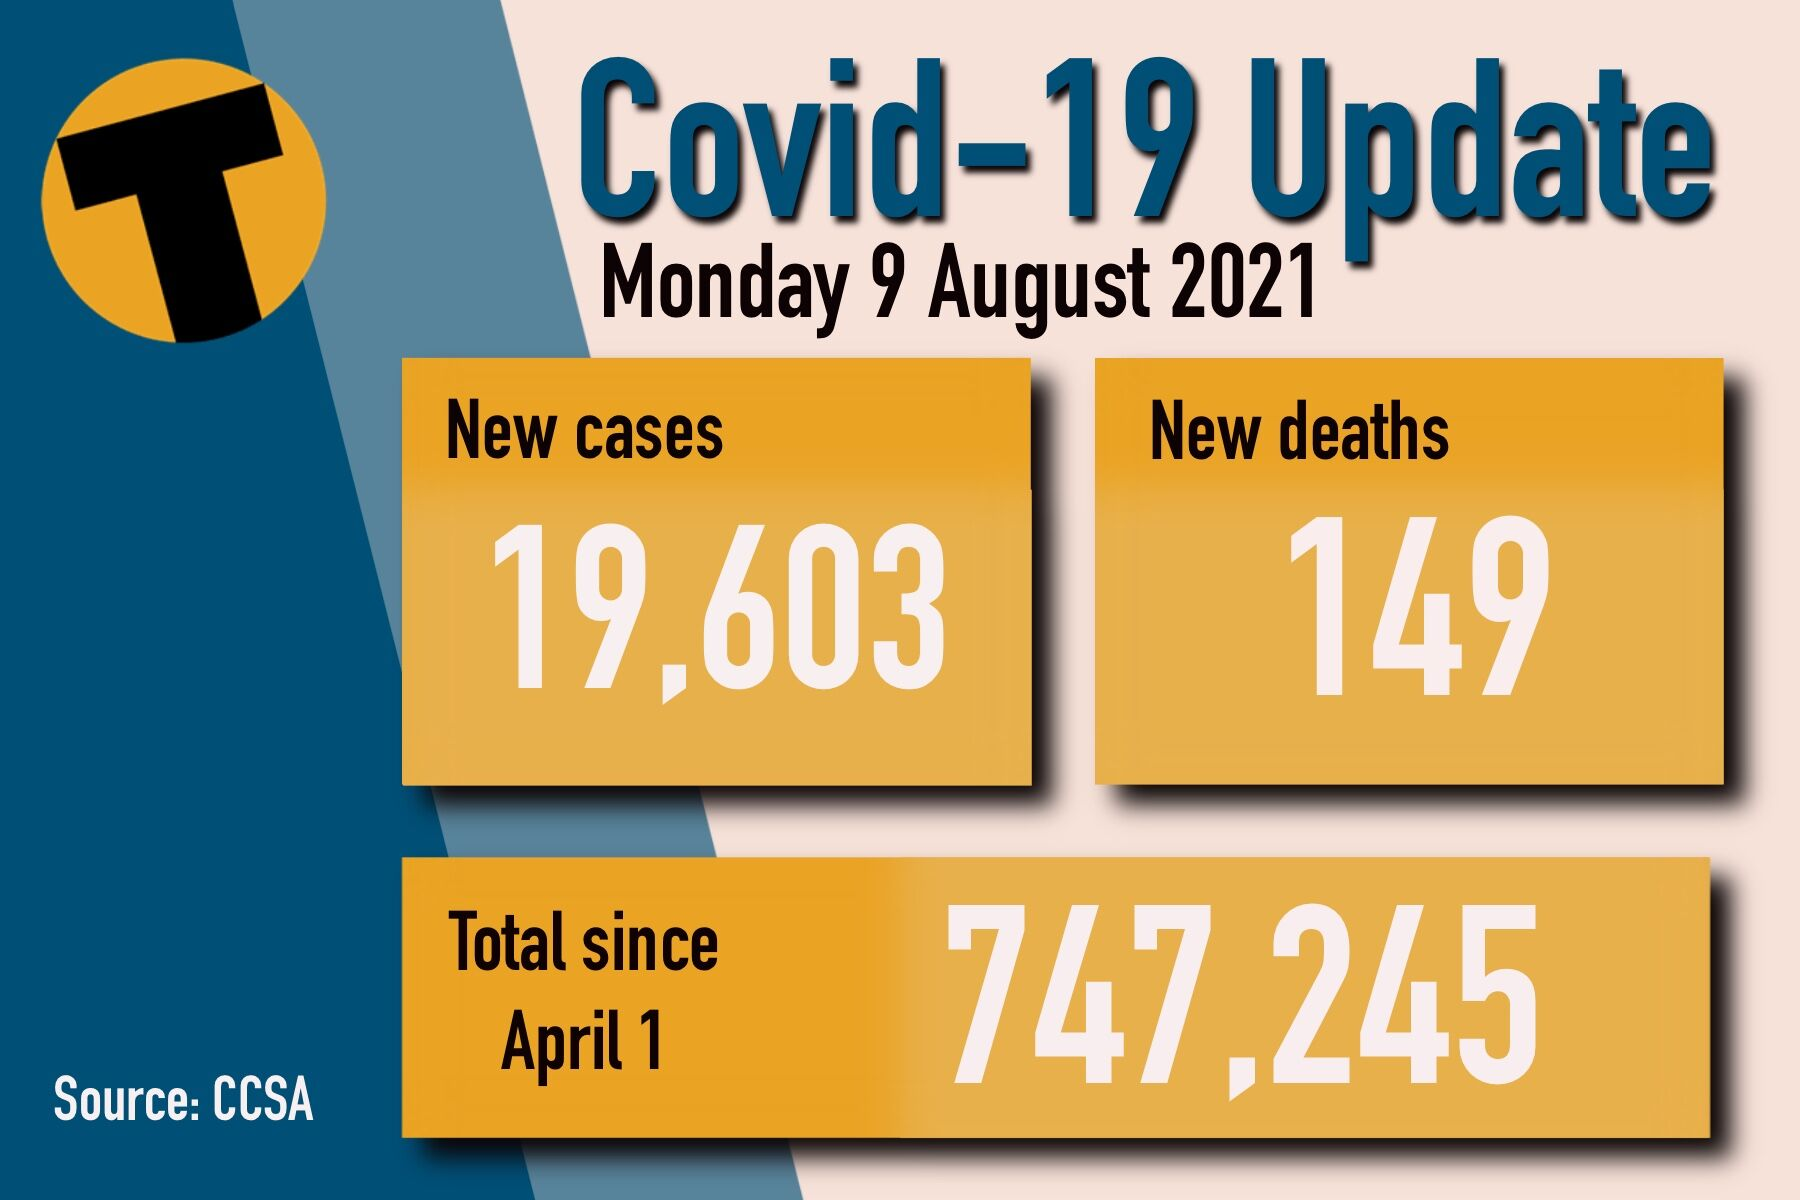 Monday Covid Update: 19,603 new cases and 149 deaths | News by Thaiger